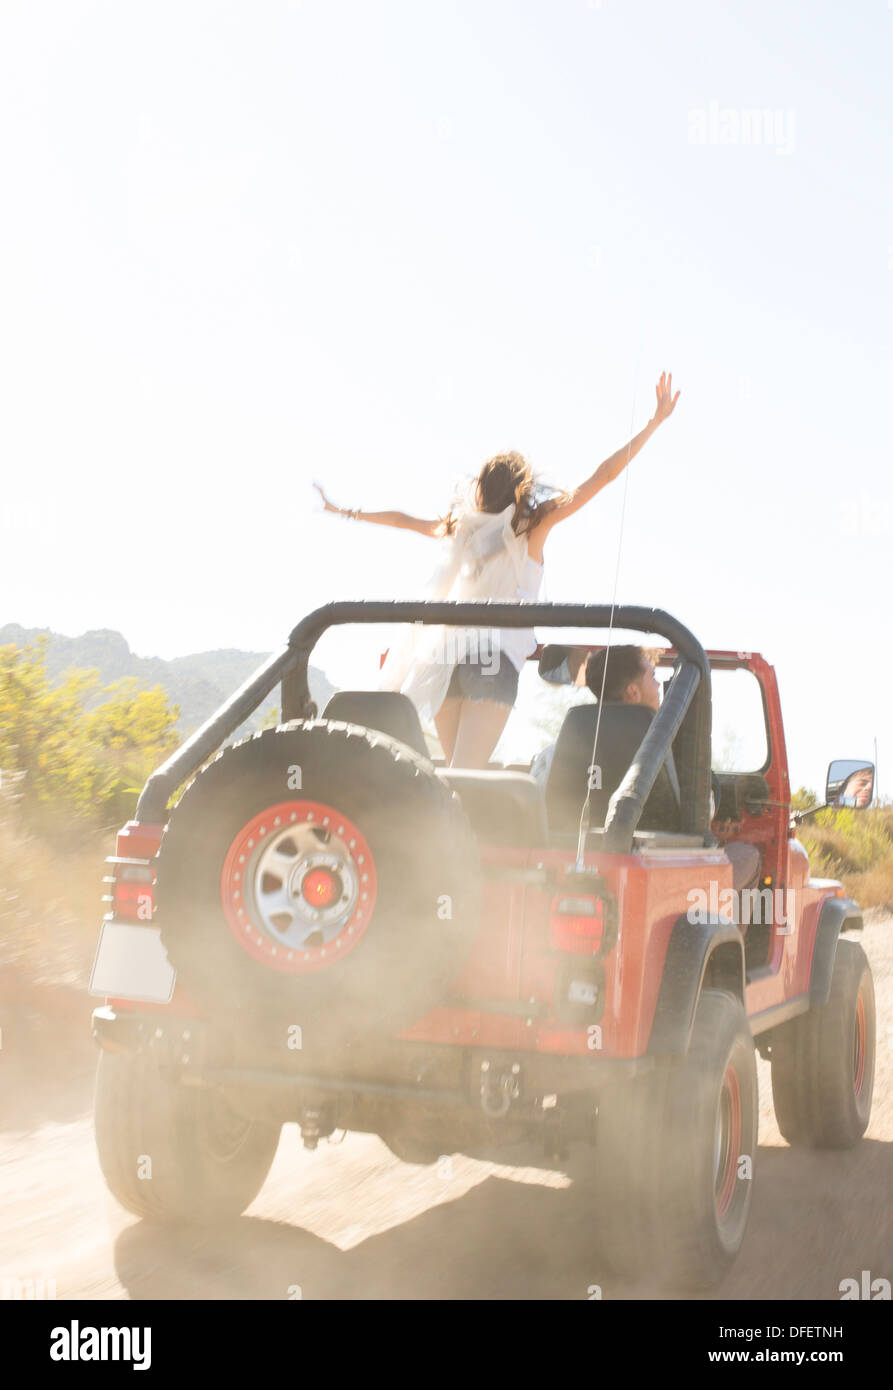 Woman cheering in sport utility vehicle on dirt road - Stock Image